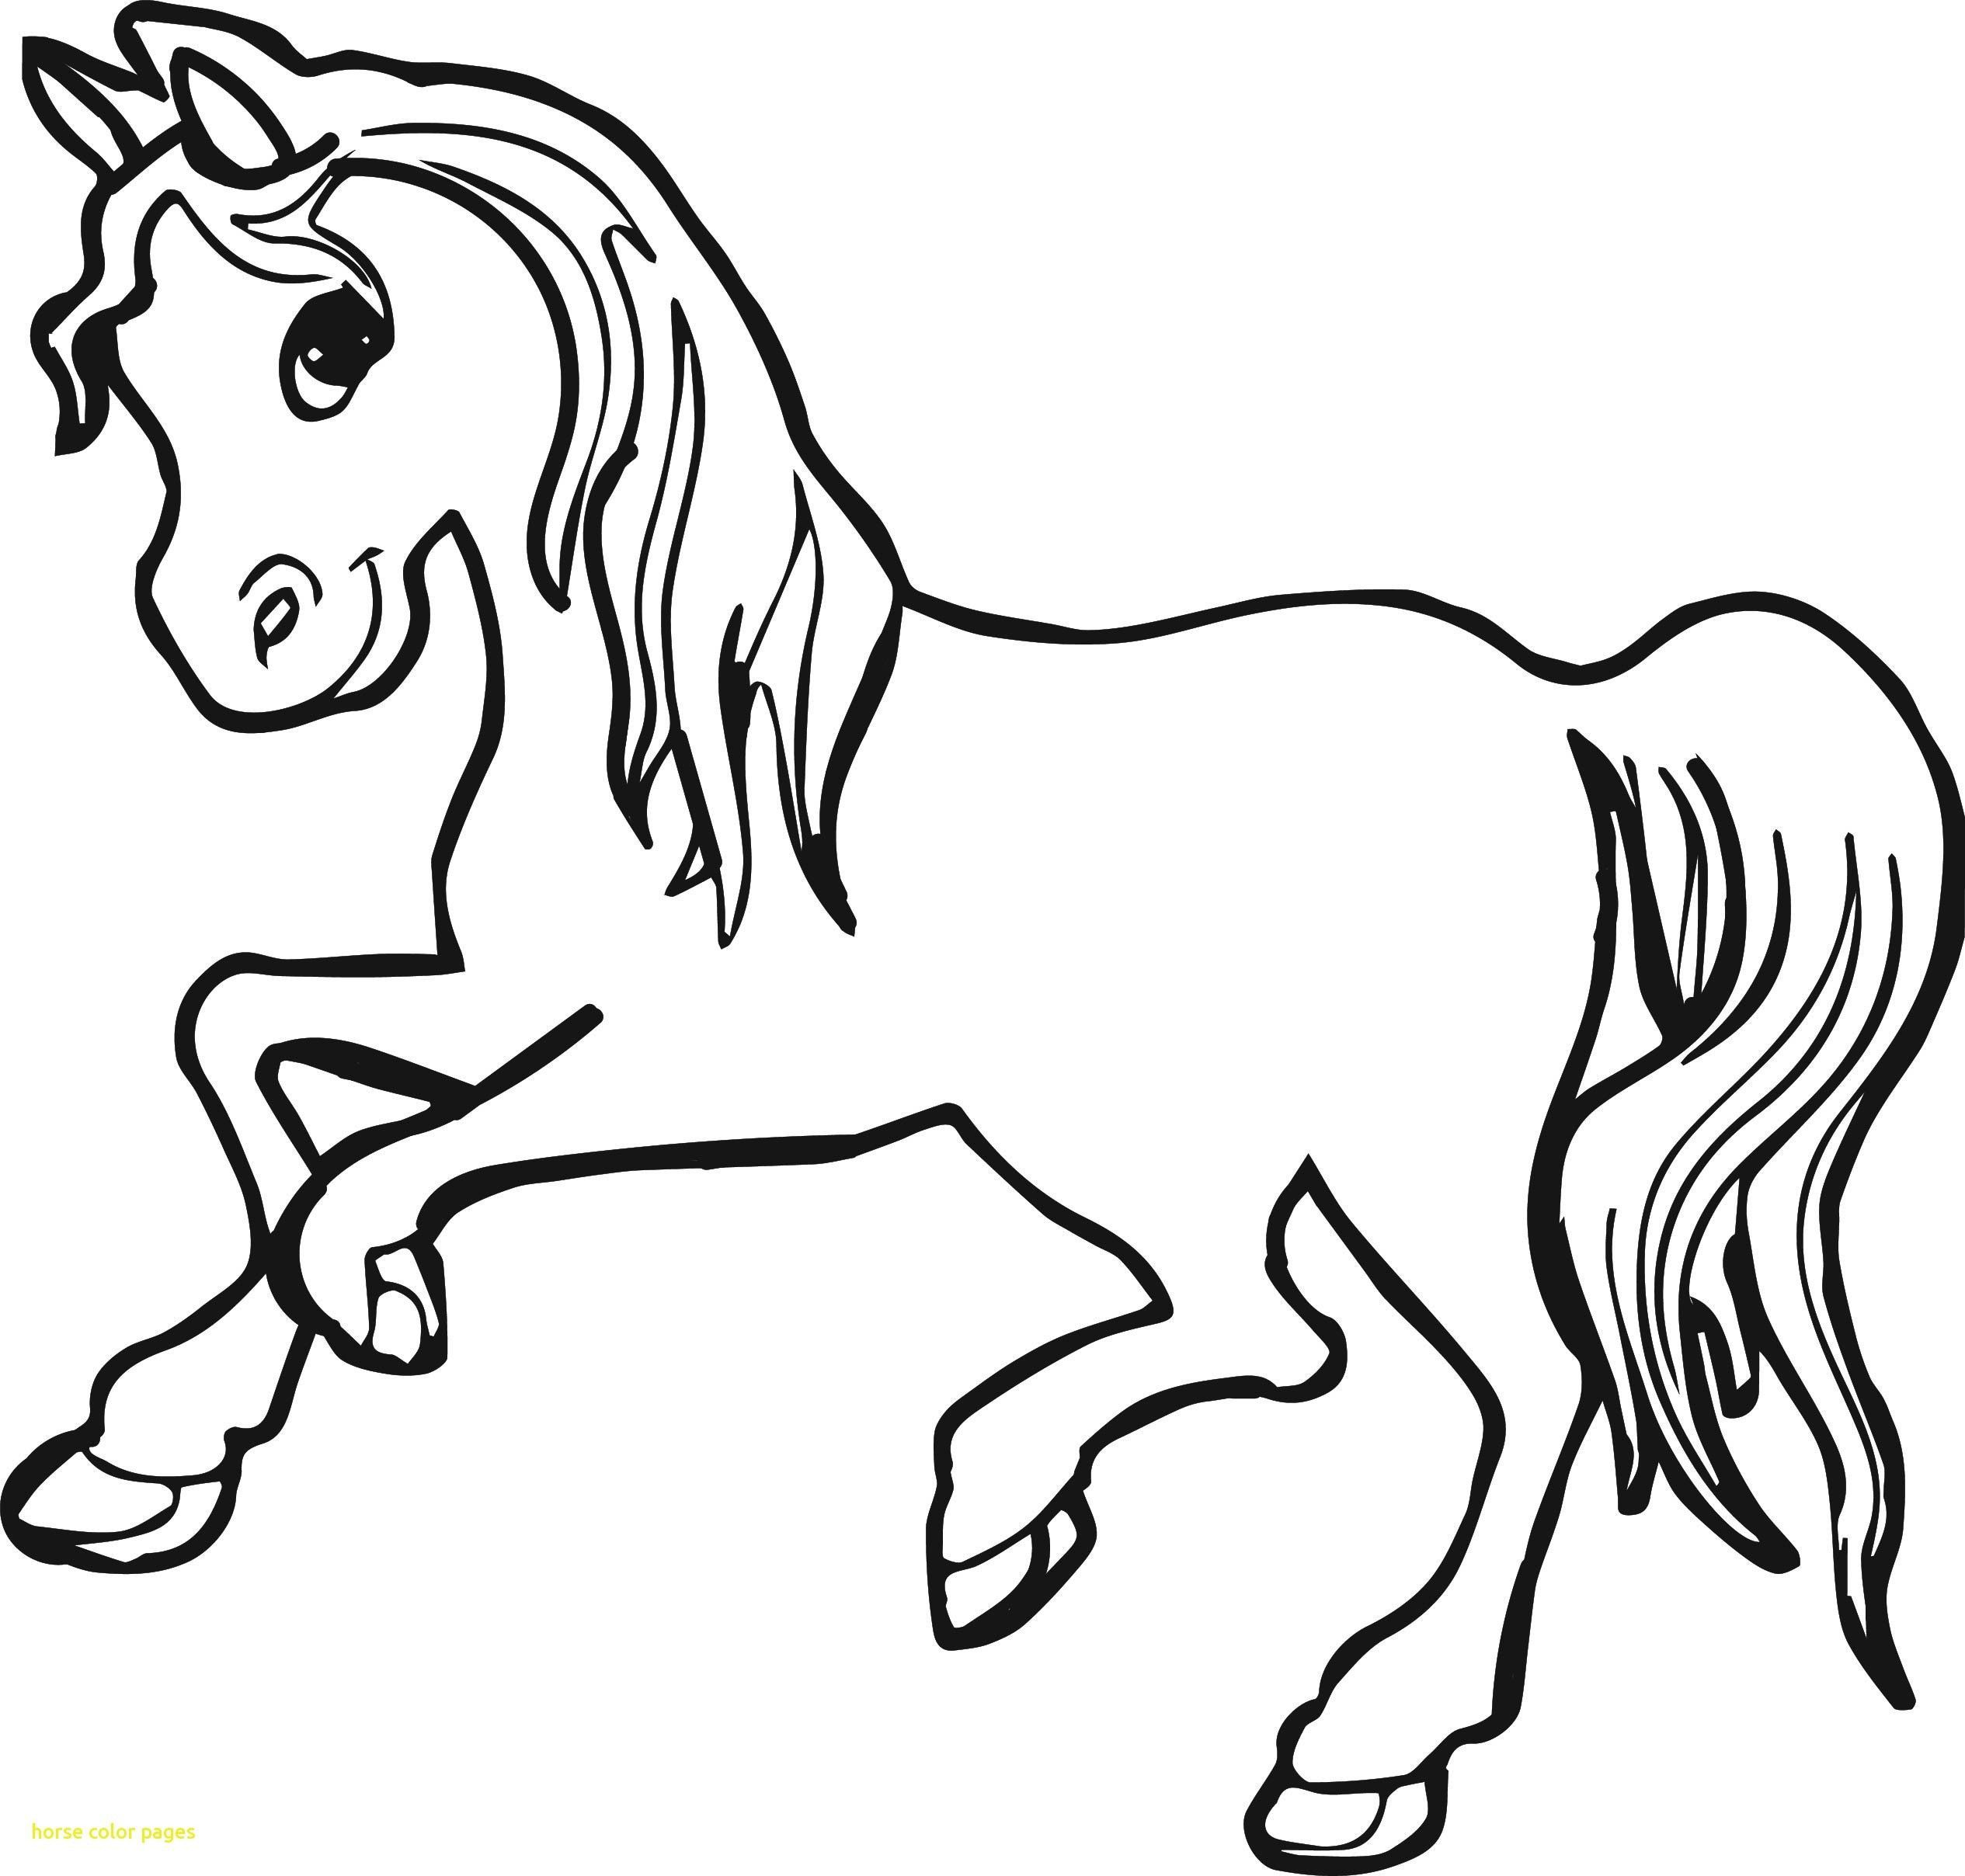 Horse Face Coloring Page From The Thousand Images On The Web With Regards To Horse Face Coloring Pa Horse Coloring Pages Animal Coloring Pages Horse Coloring